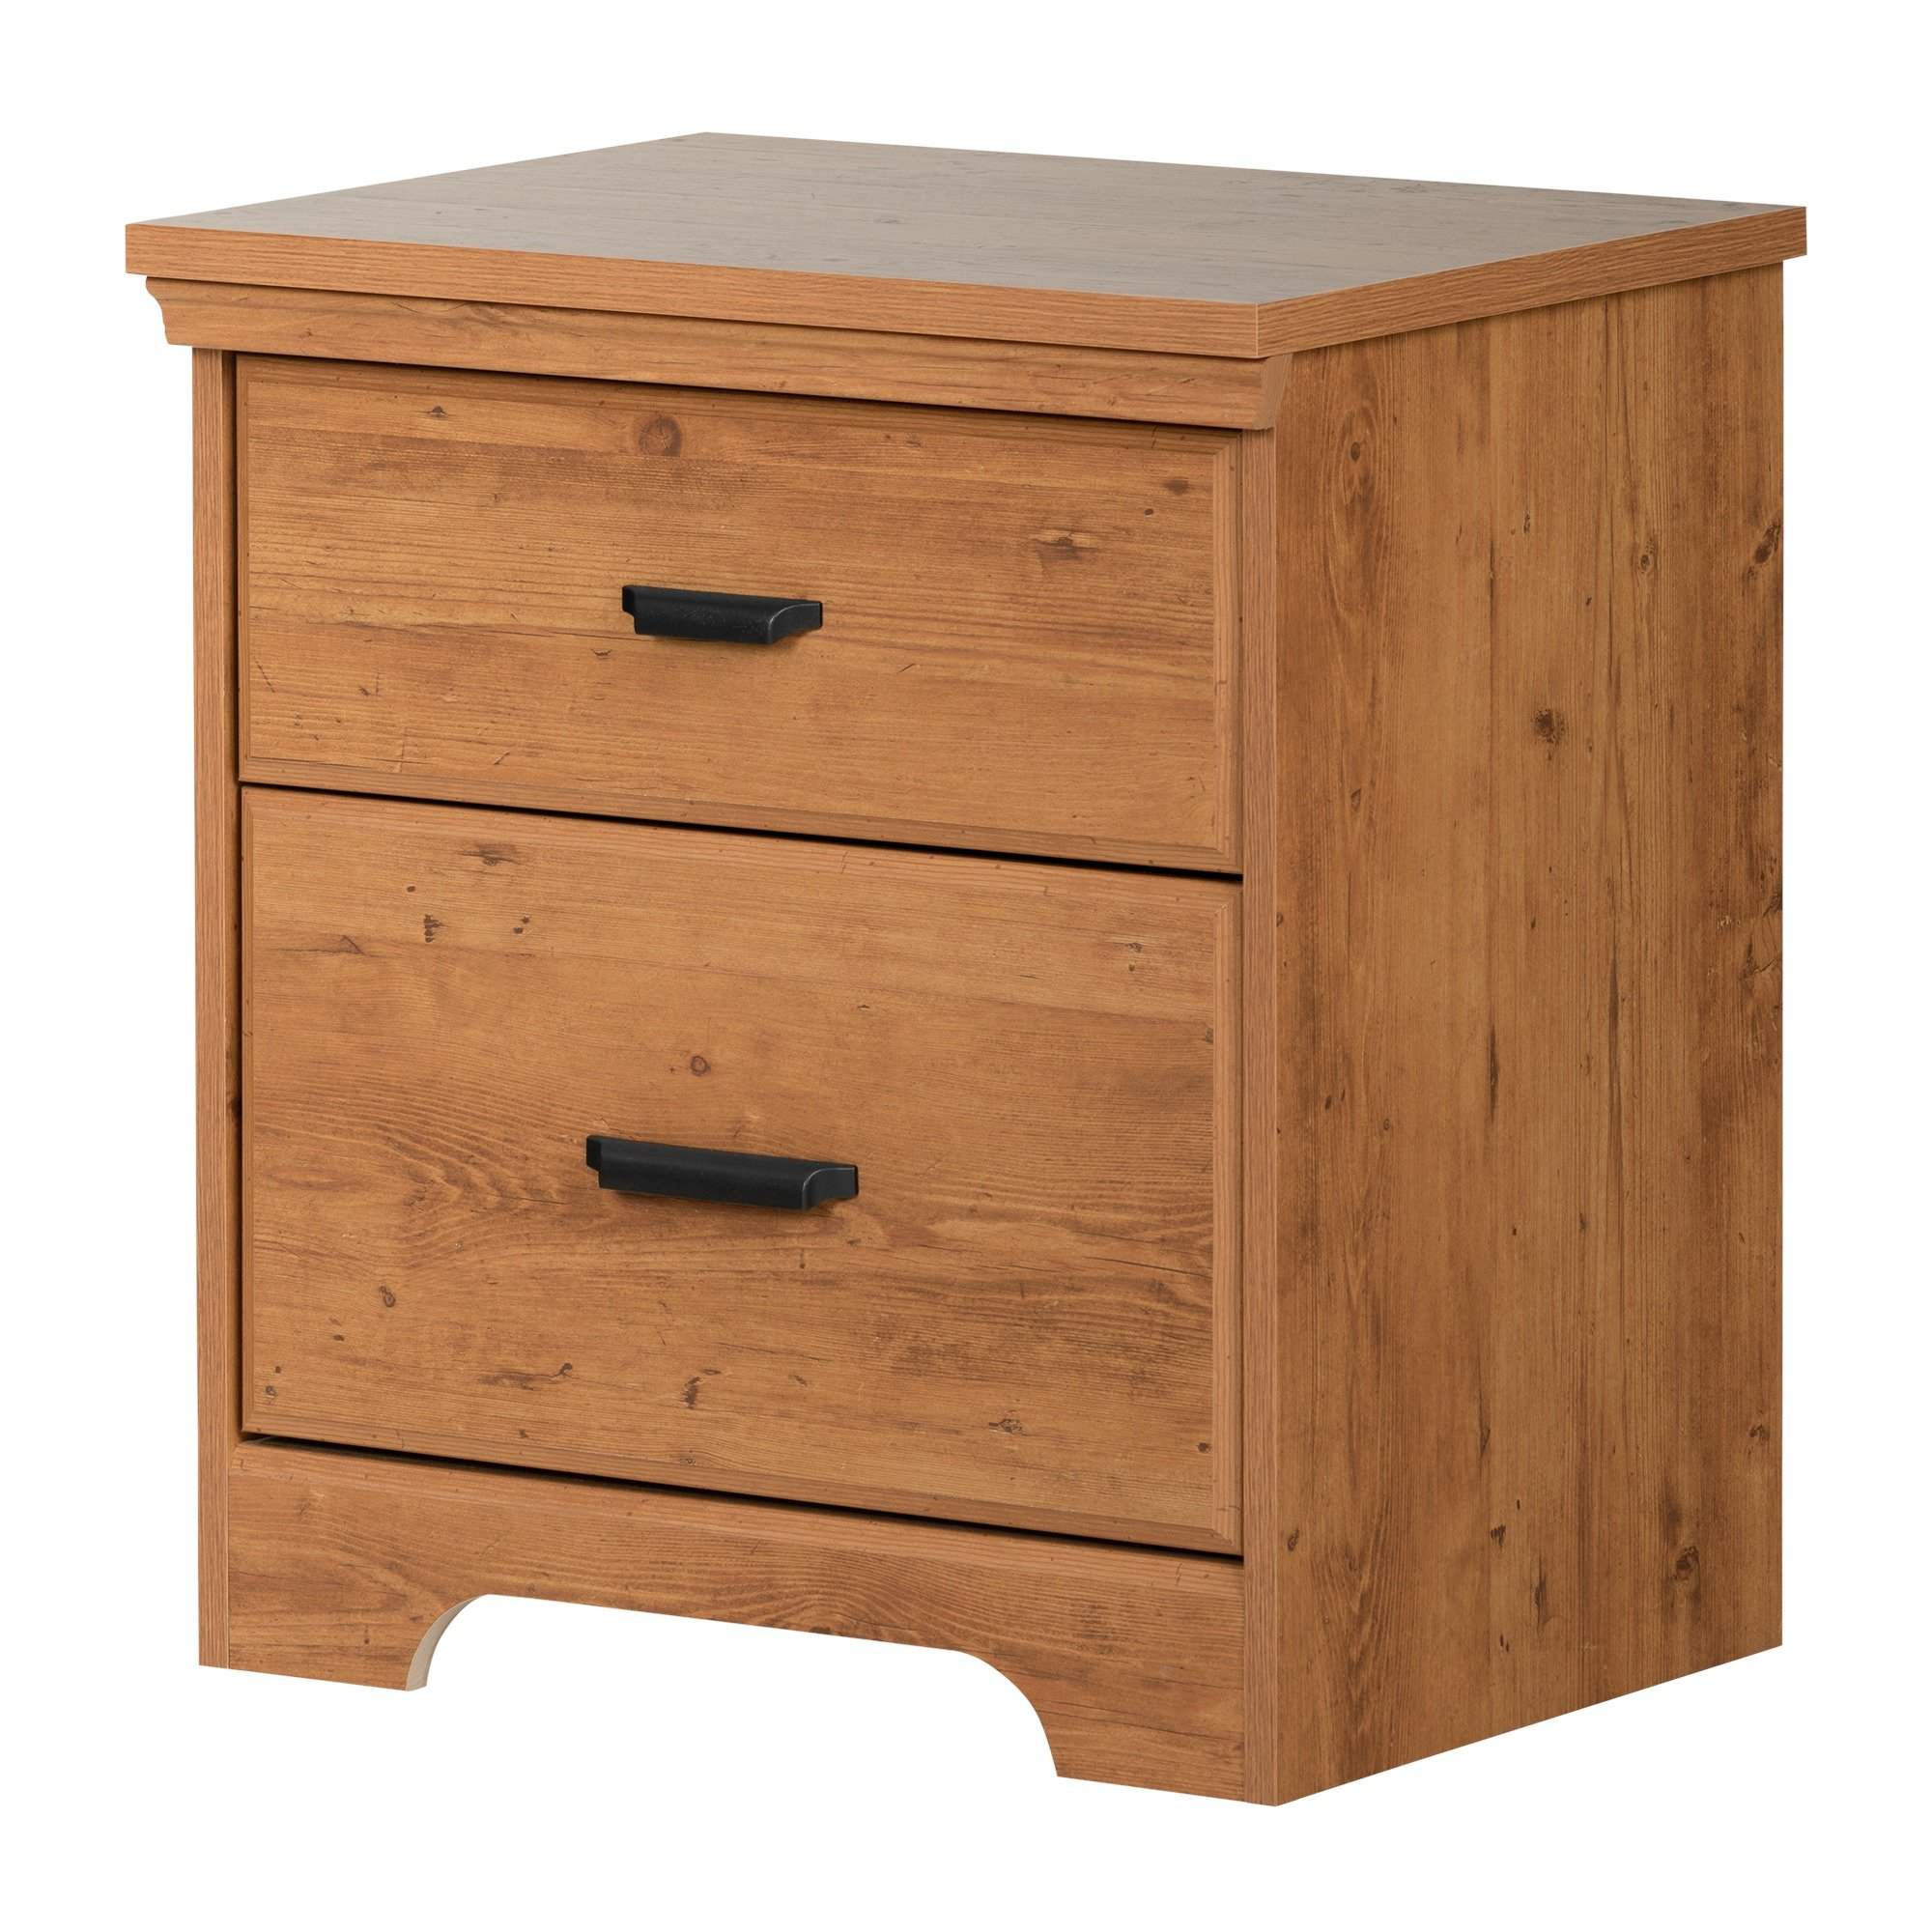 South Shore Versa 2-Drawer Nightstand, Country Pine with Antique Handles